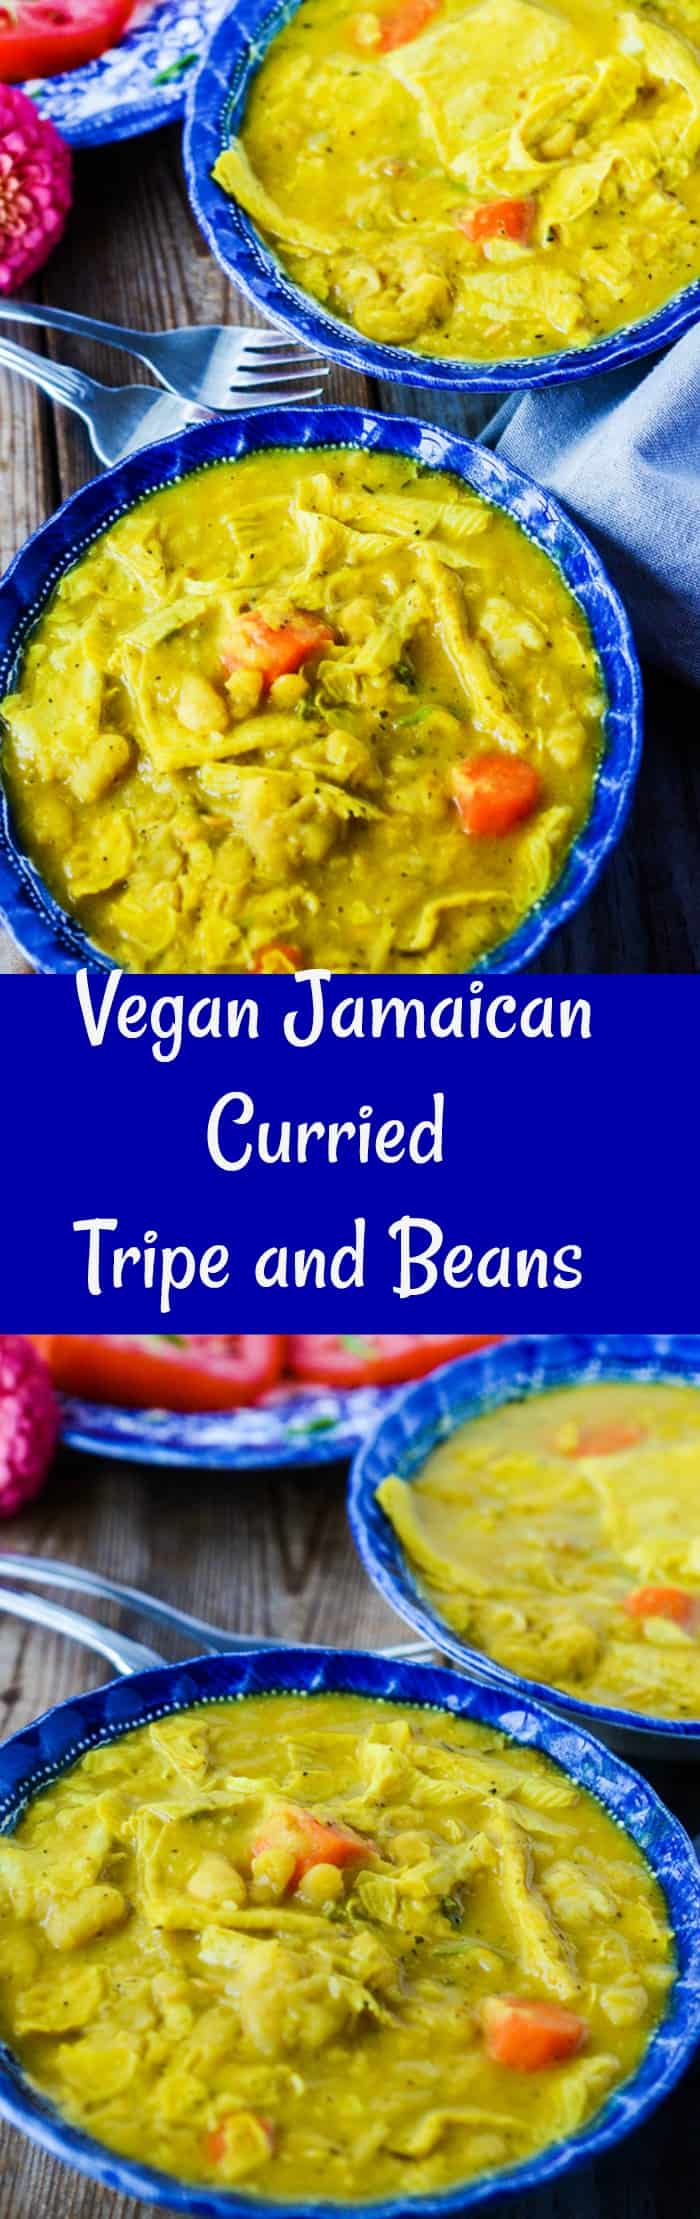 Vegan Jamaican Curried Tripe and Beans